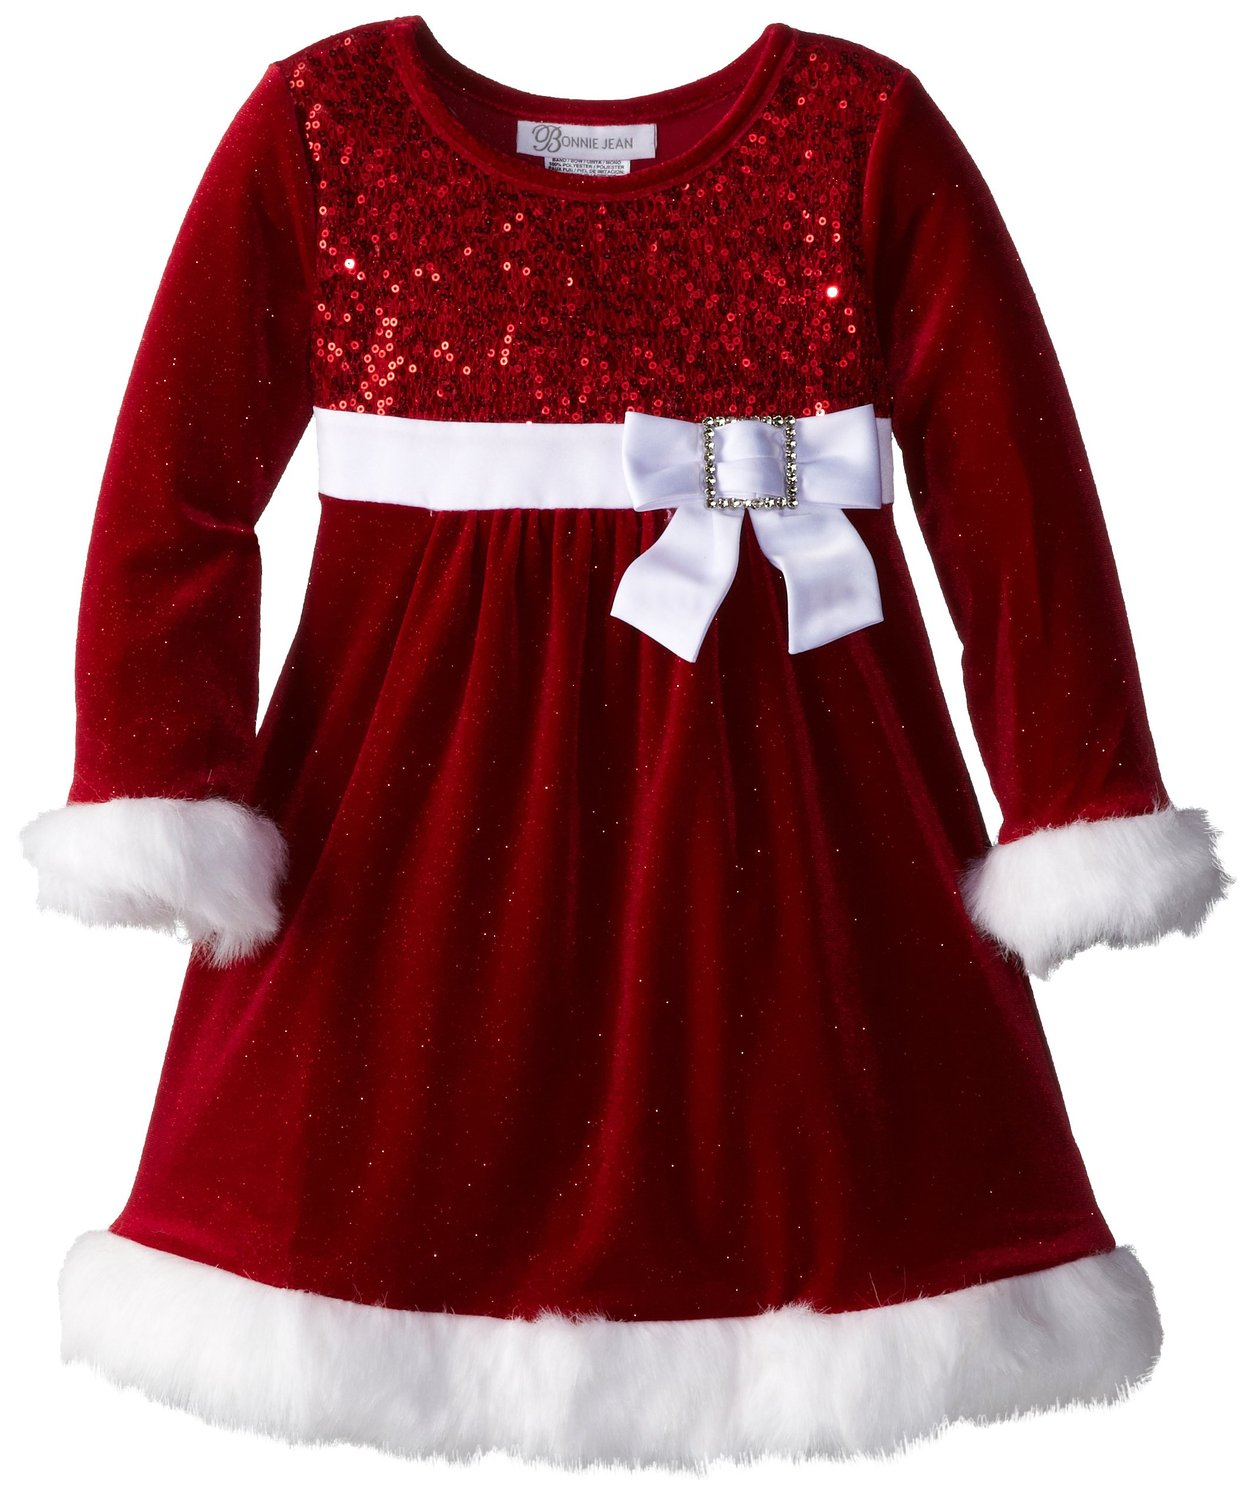 Bonnie Jean Baby Girls Christmas Dress Red Sequined Sold Out